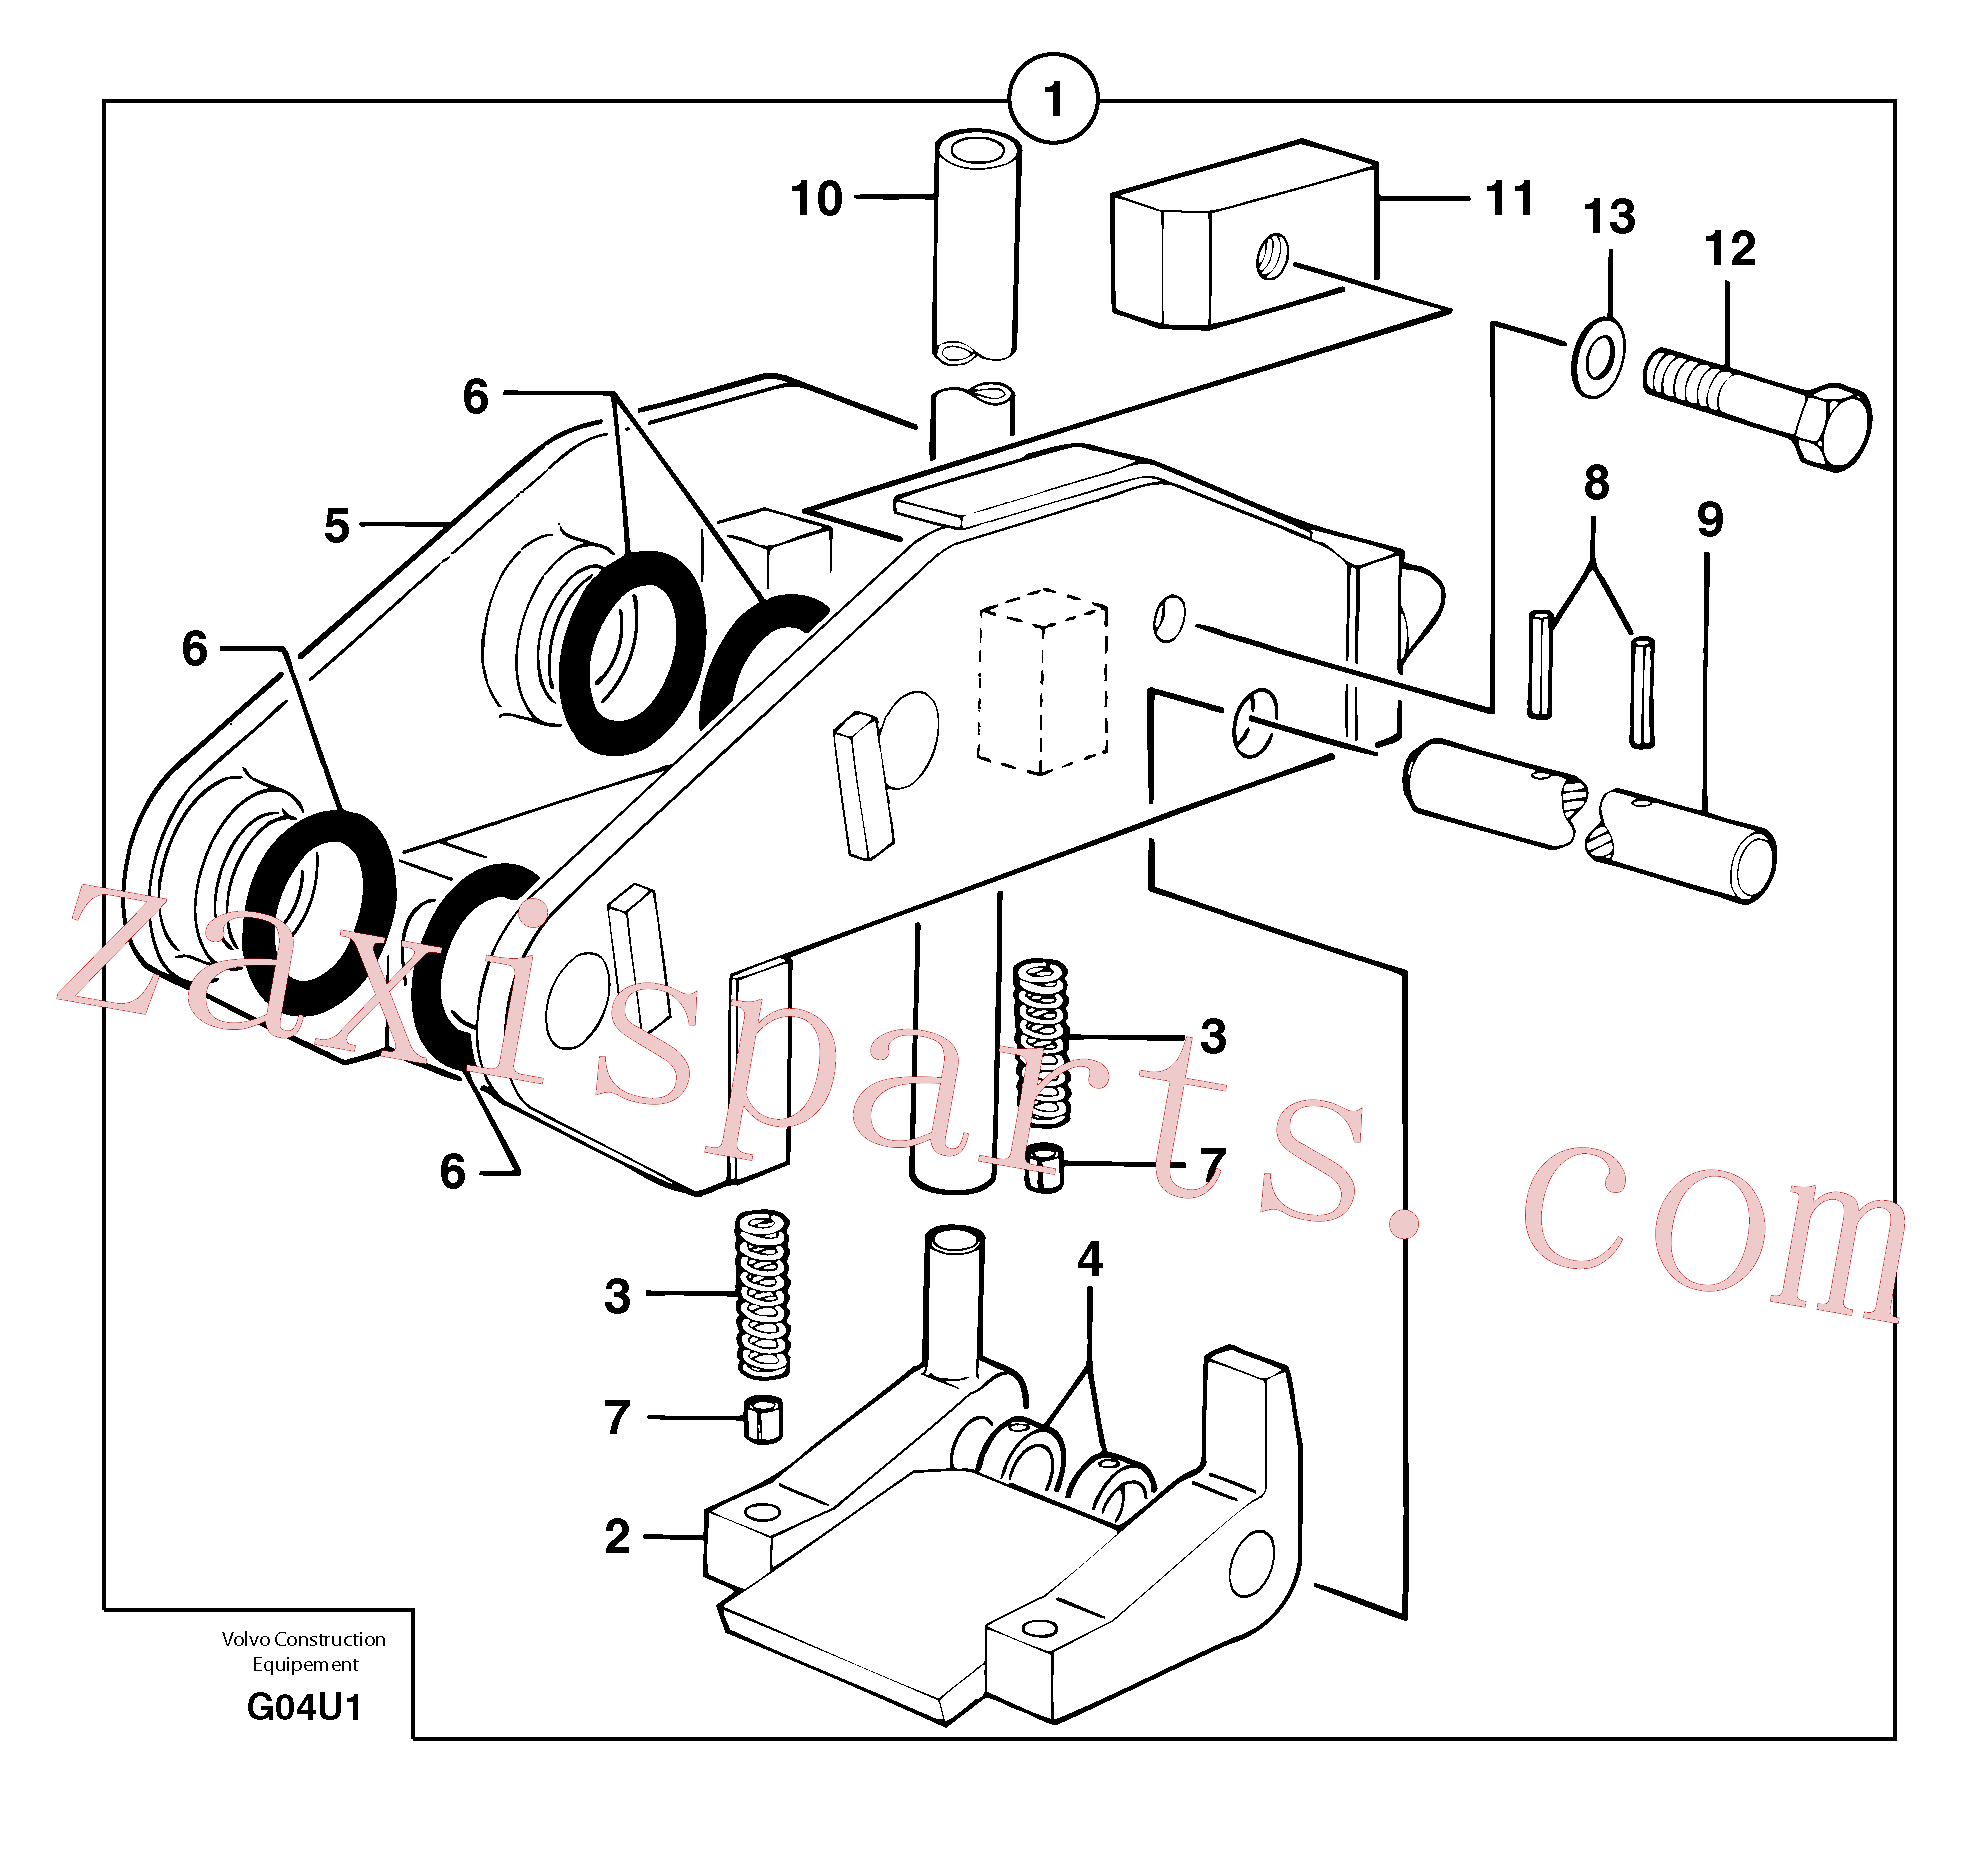 VOE11805707 for Volvo Tool holder / mechanical control(G04U1 assembly)